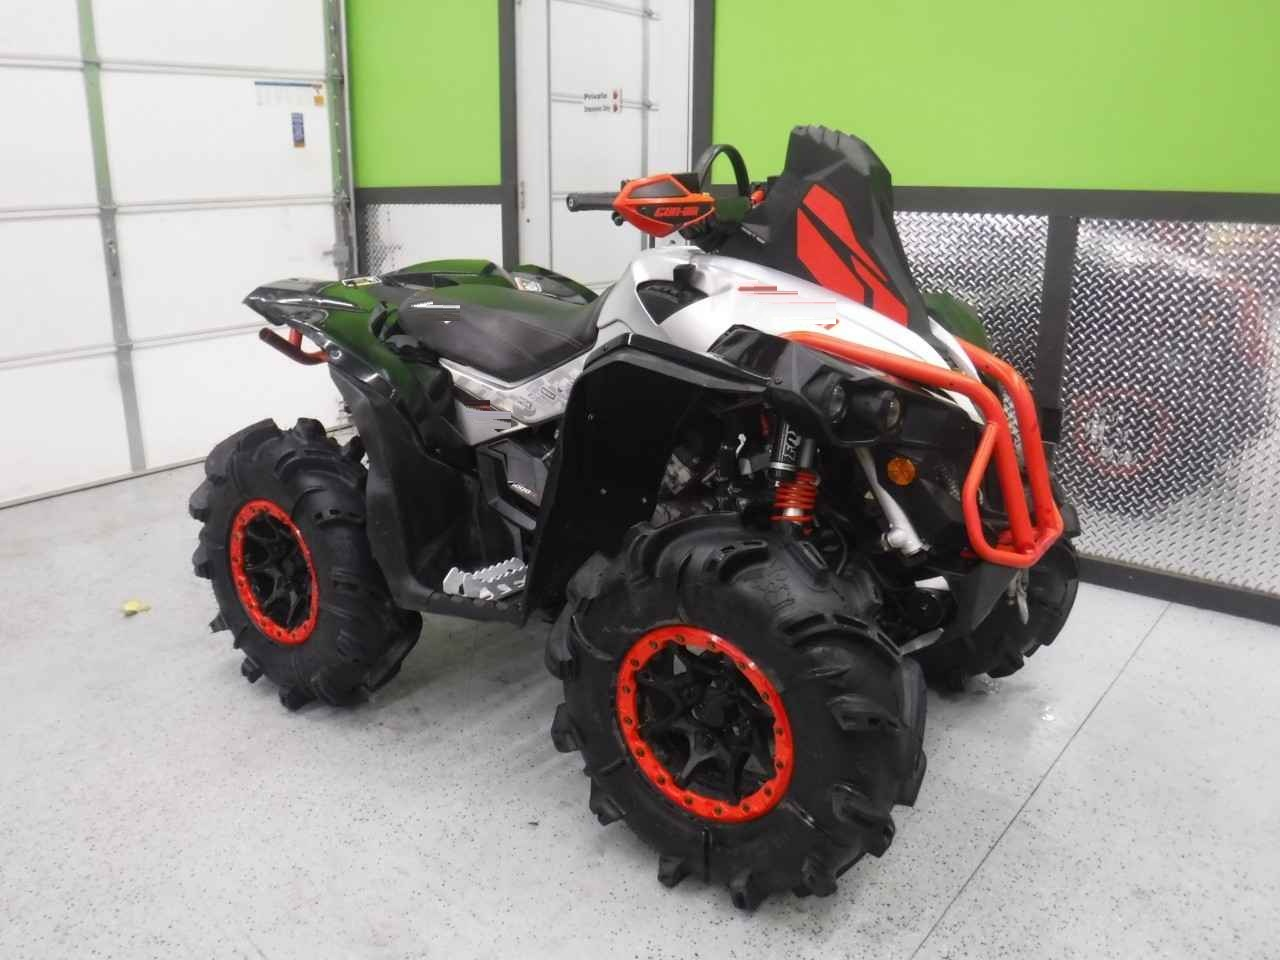 How Are Can-Am ATVs Able to Handle All Kinds of Terrain?